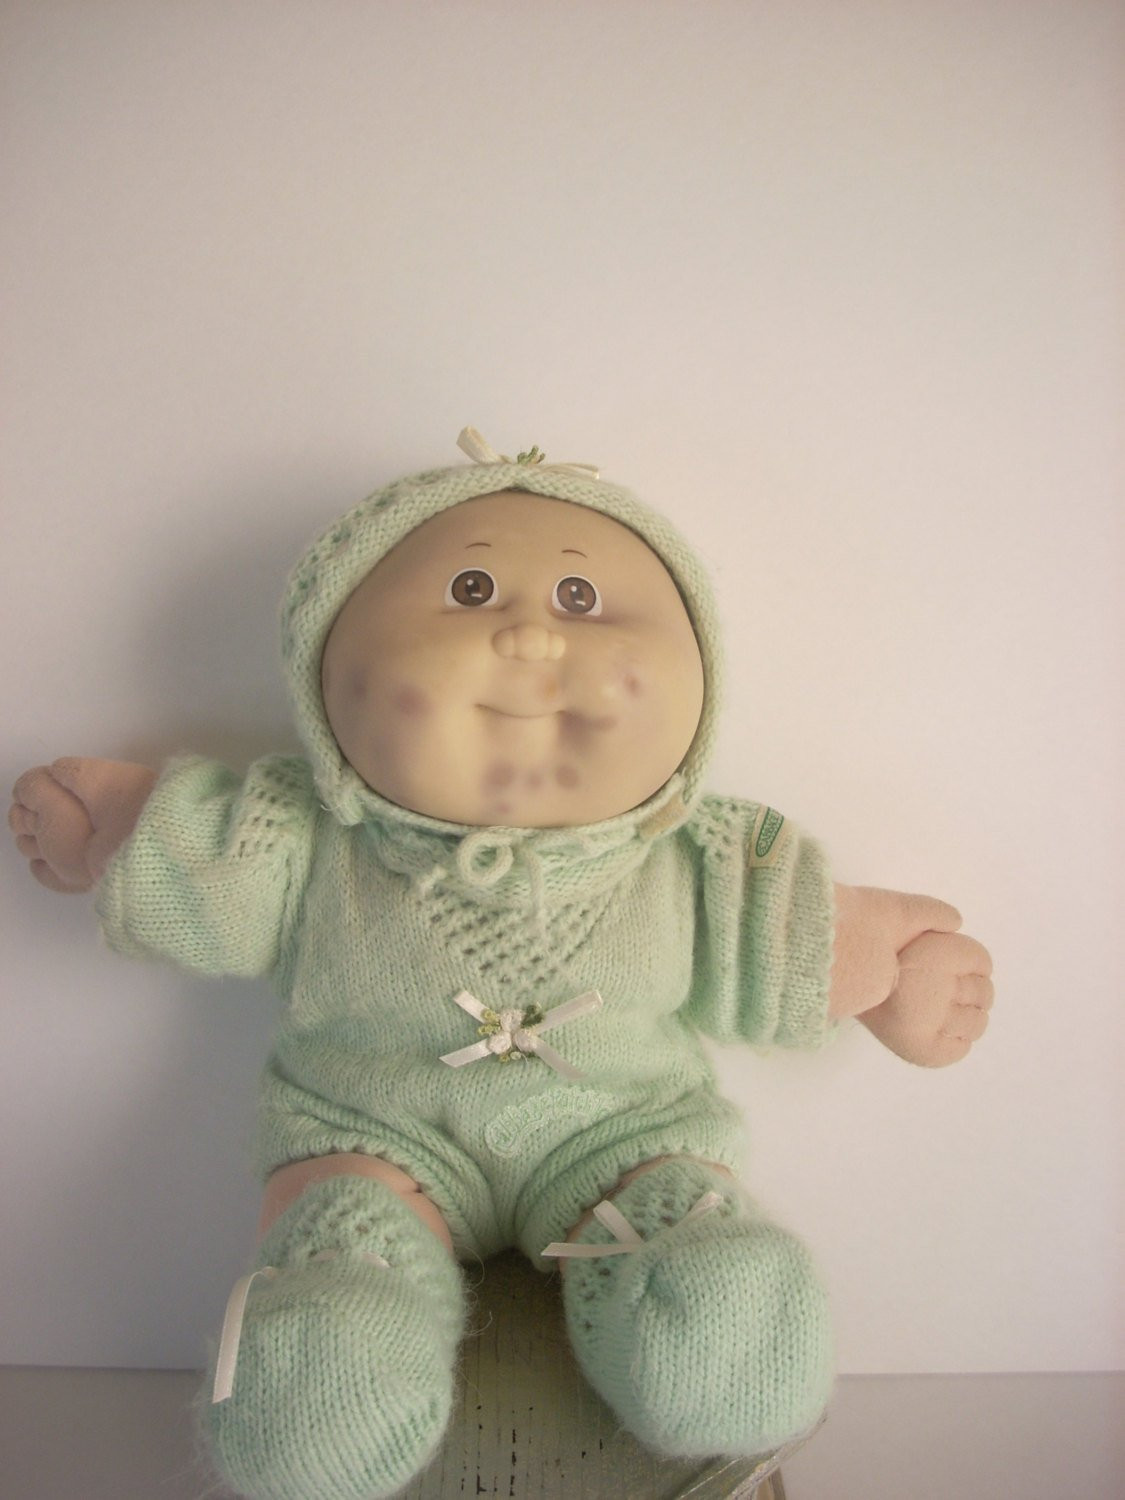 Cabbage Patch Doll Value Luxury Coleco Cabbage Patch Kids Doll with Pox by Boxoftoys On Etsy Of Contemporary 40 Pictures Cabbage Patch Doll Value